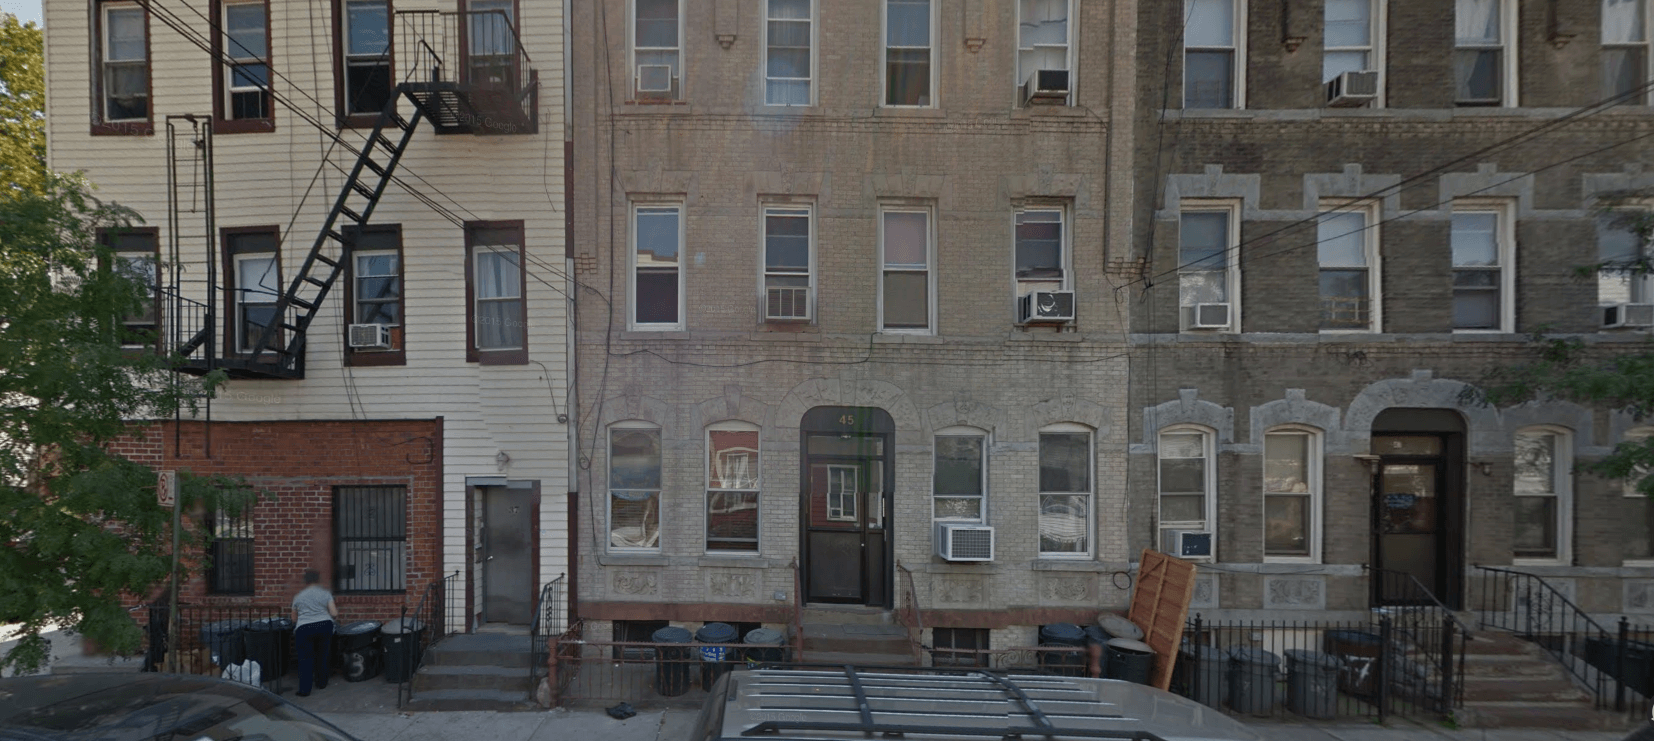 Residential Renovation - 37 Driggs Ave, Brooklyn.png